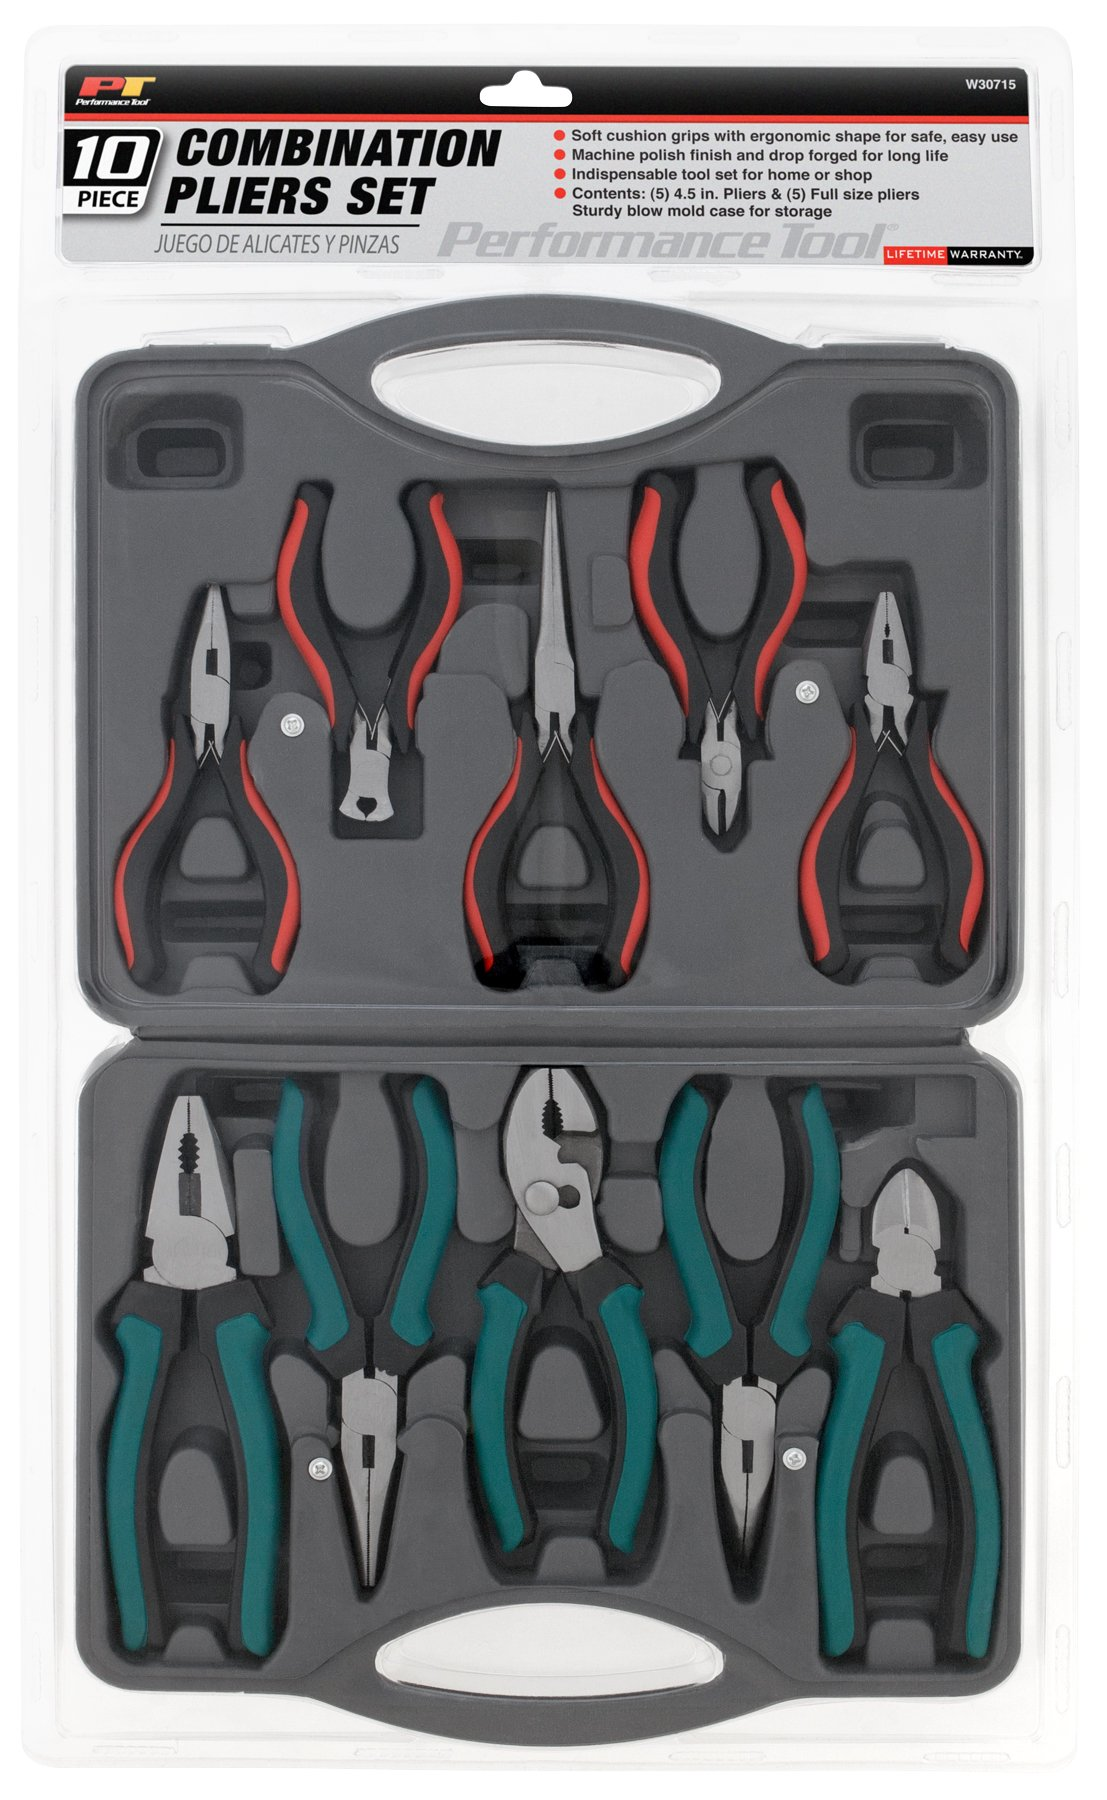 Performance Tool W30715 Pliers Combination Set, 10-Piece by Performance Tool